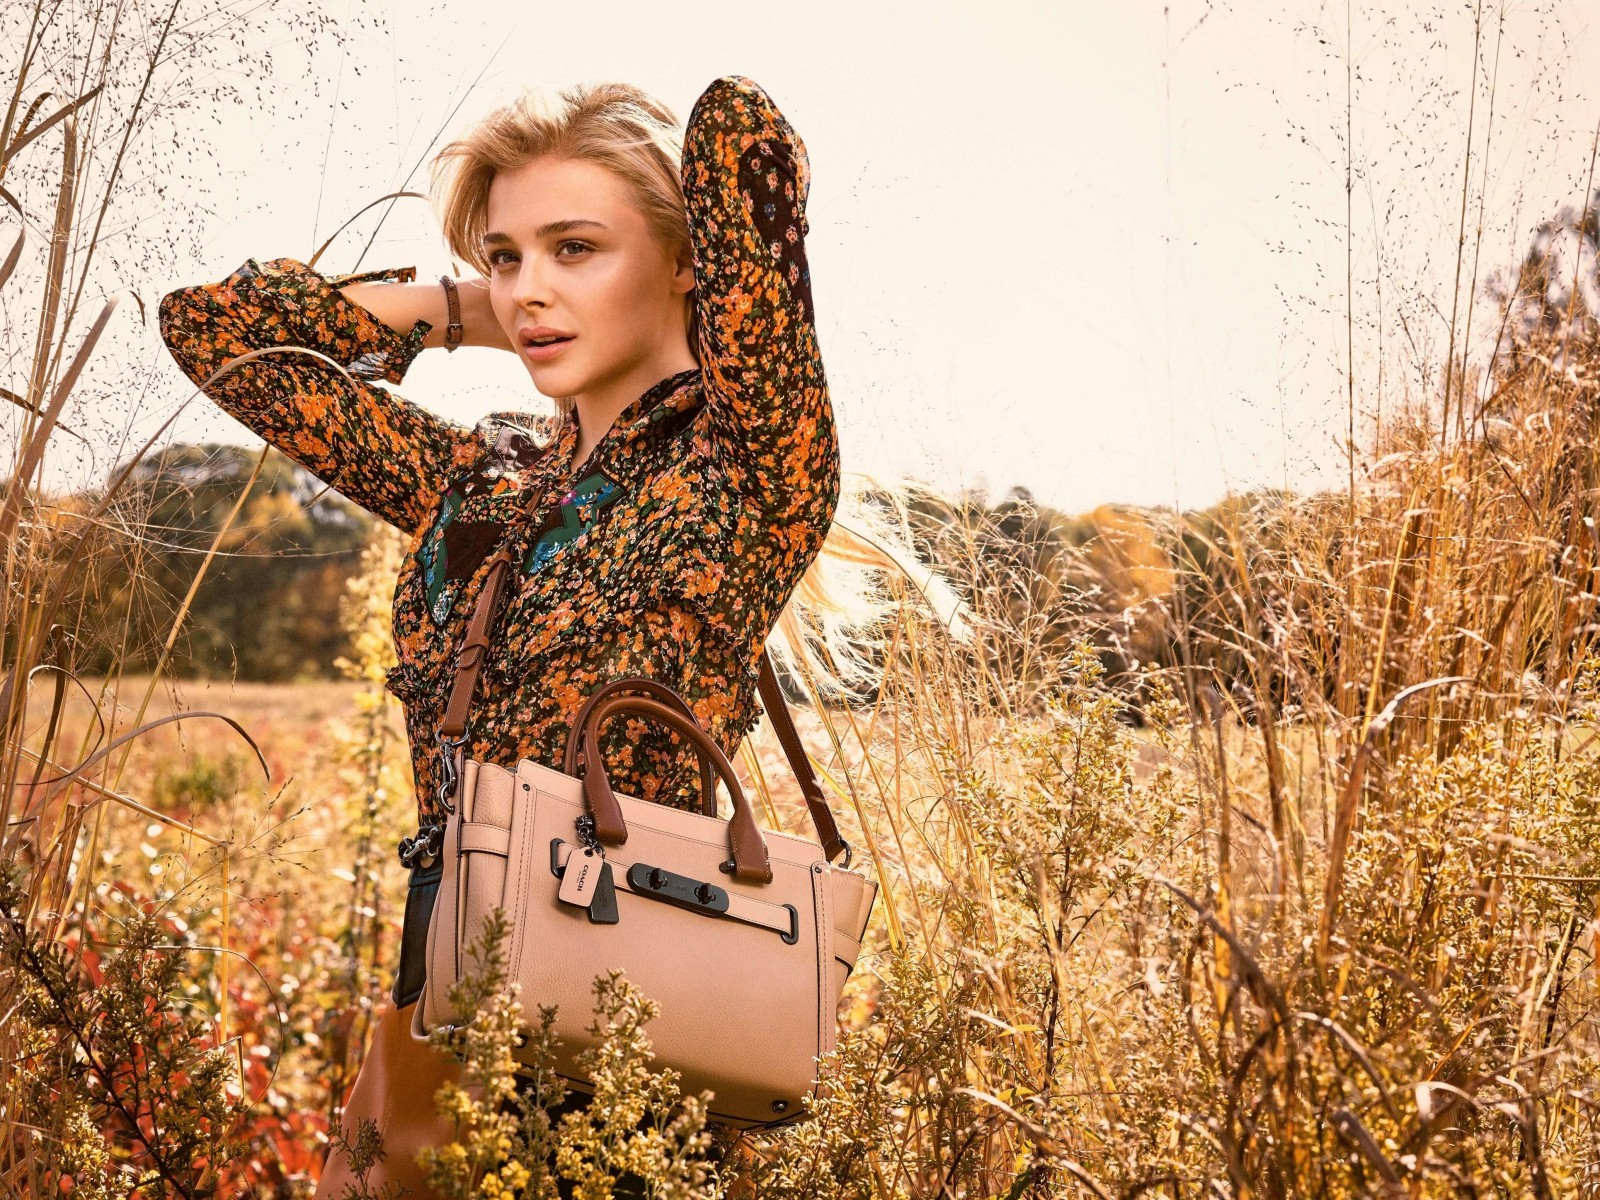 Chloe Moretz Coach Spring 2016 Campaign Wallpaper for Desktop 1600x1200